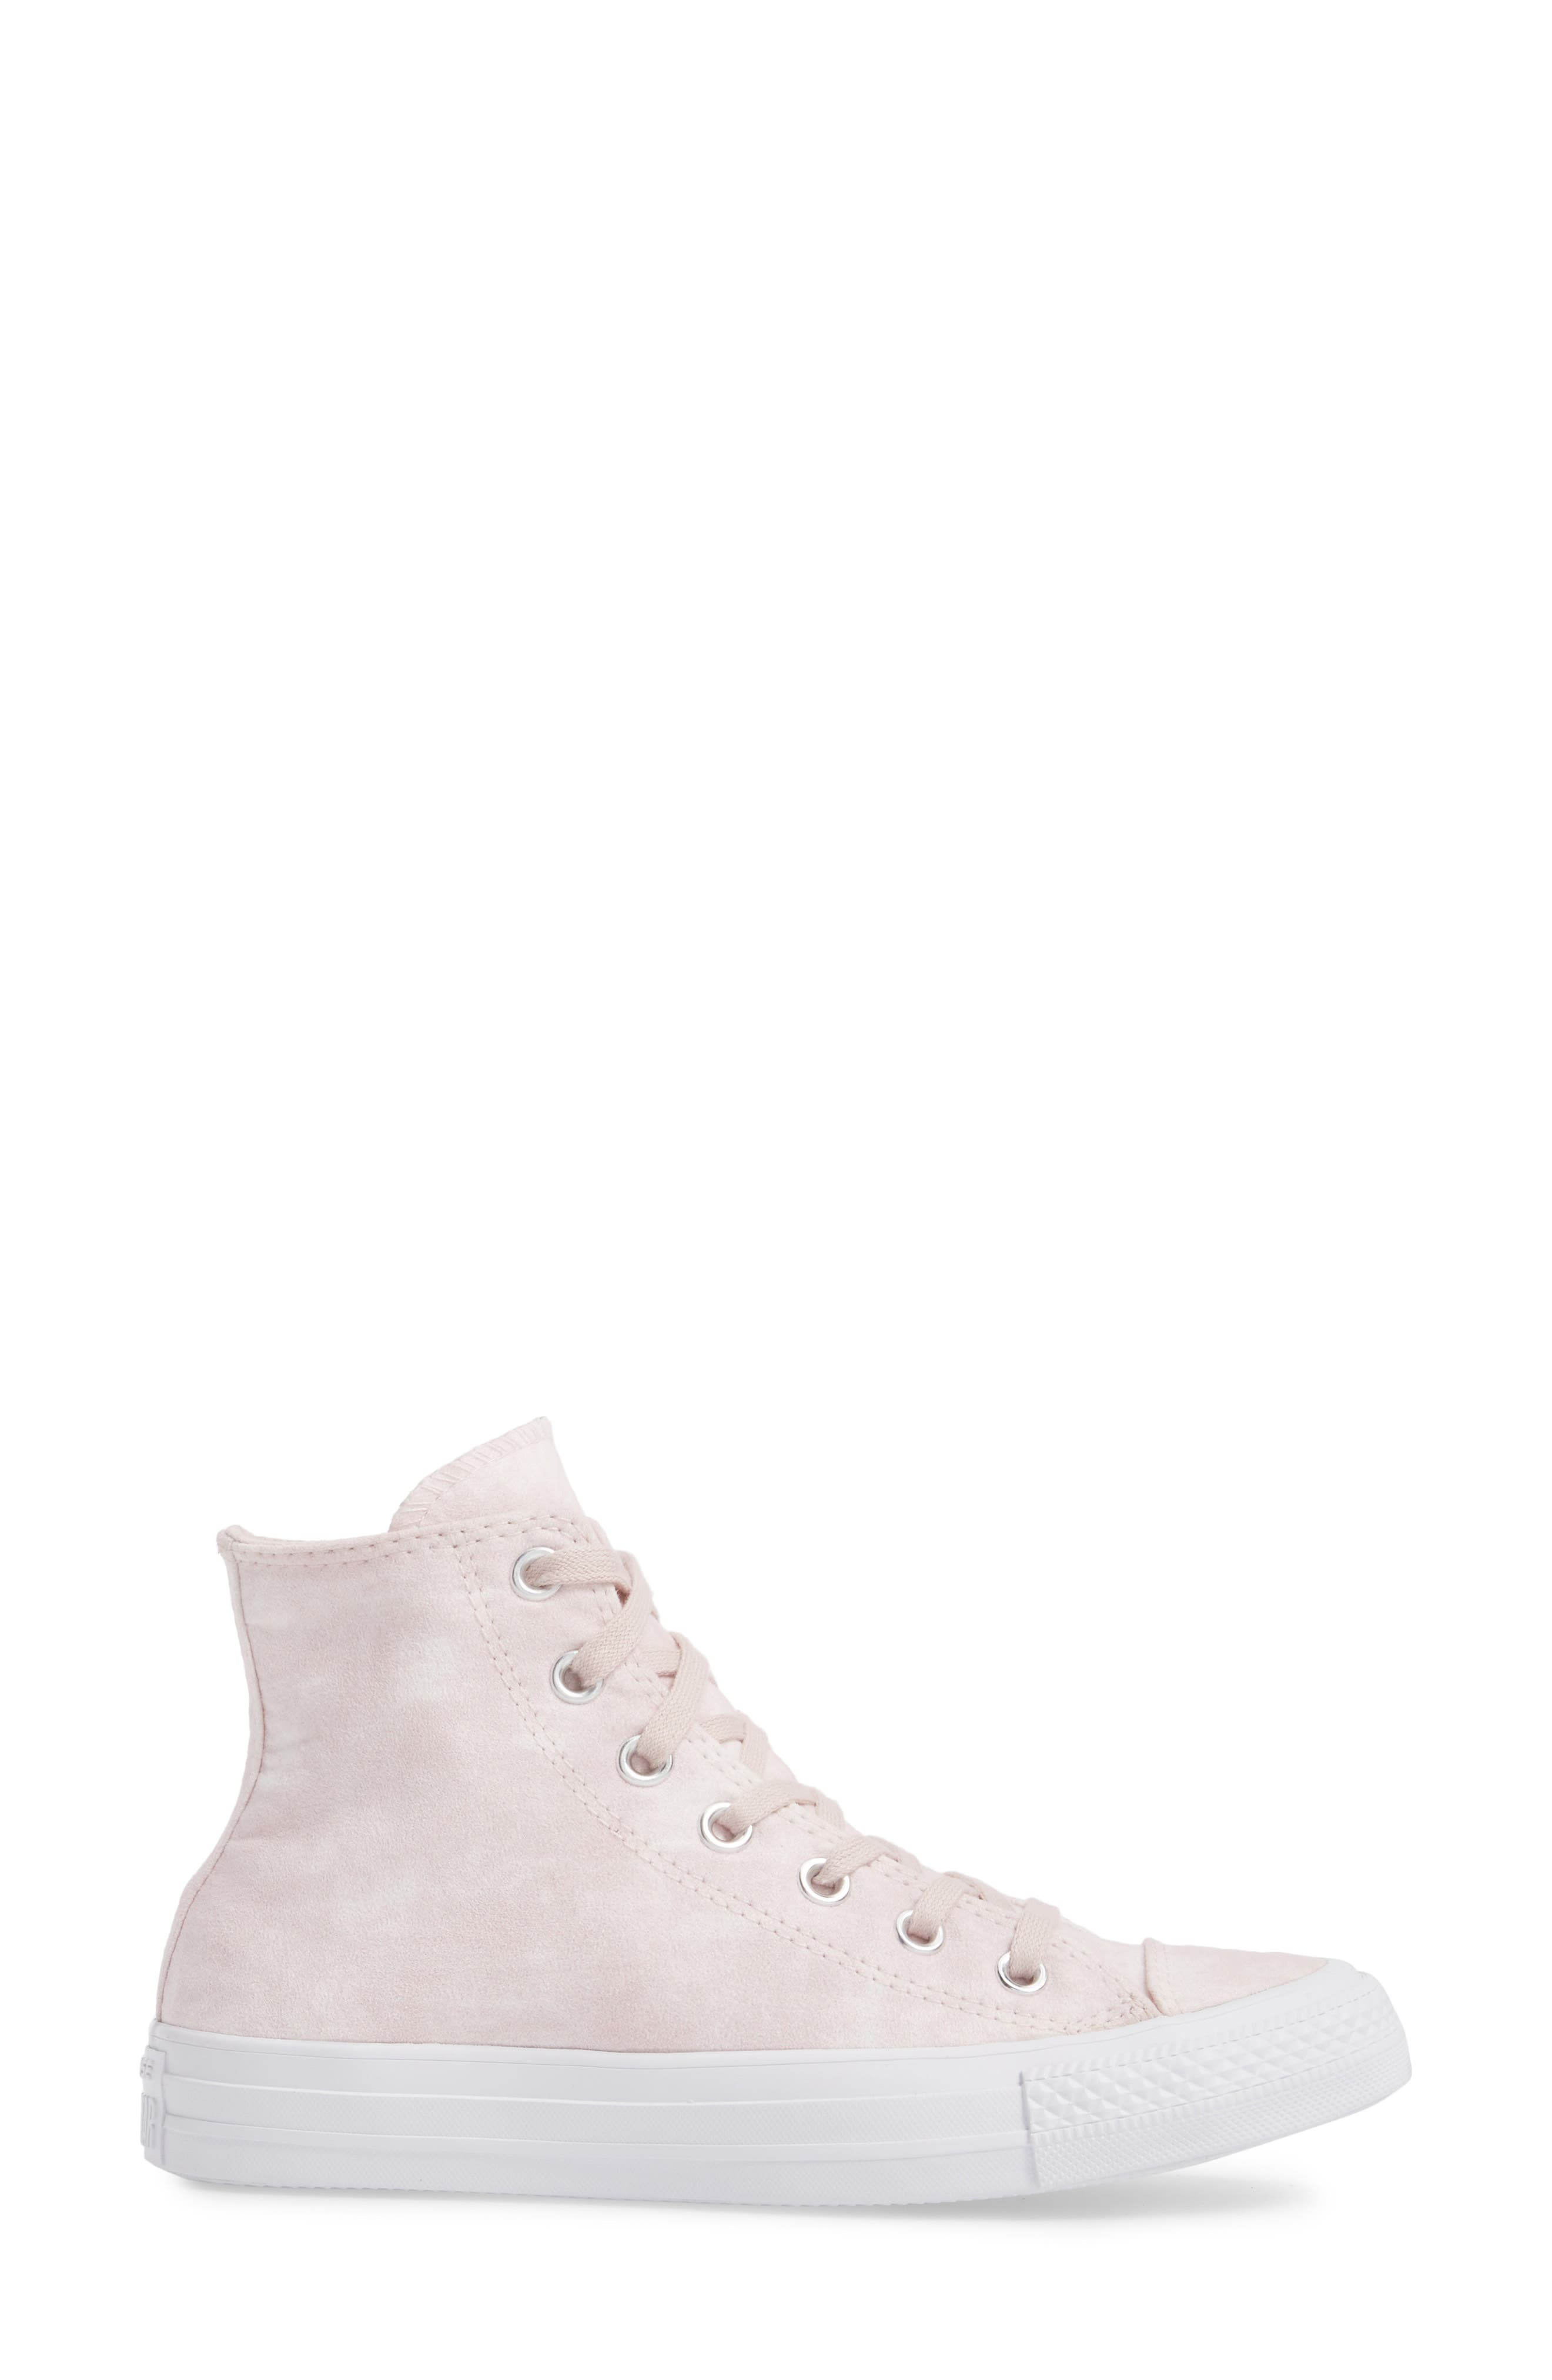 Chuck Taylor<sup>®</sup> All Star<sup>®</sup> Peached High Top Sneaker,                             Alternate thumbnail 3, color,                             653